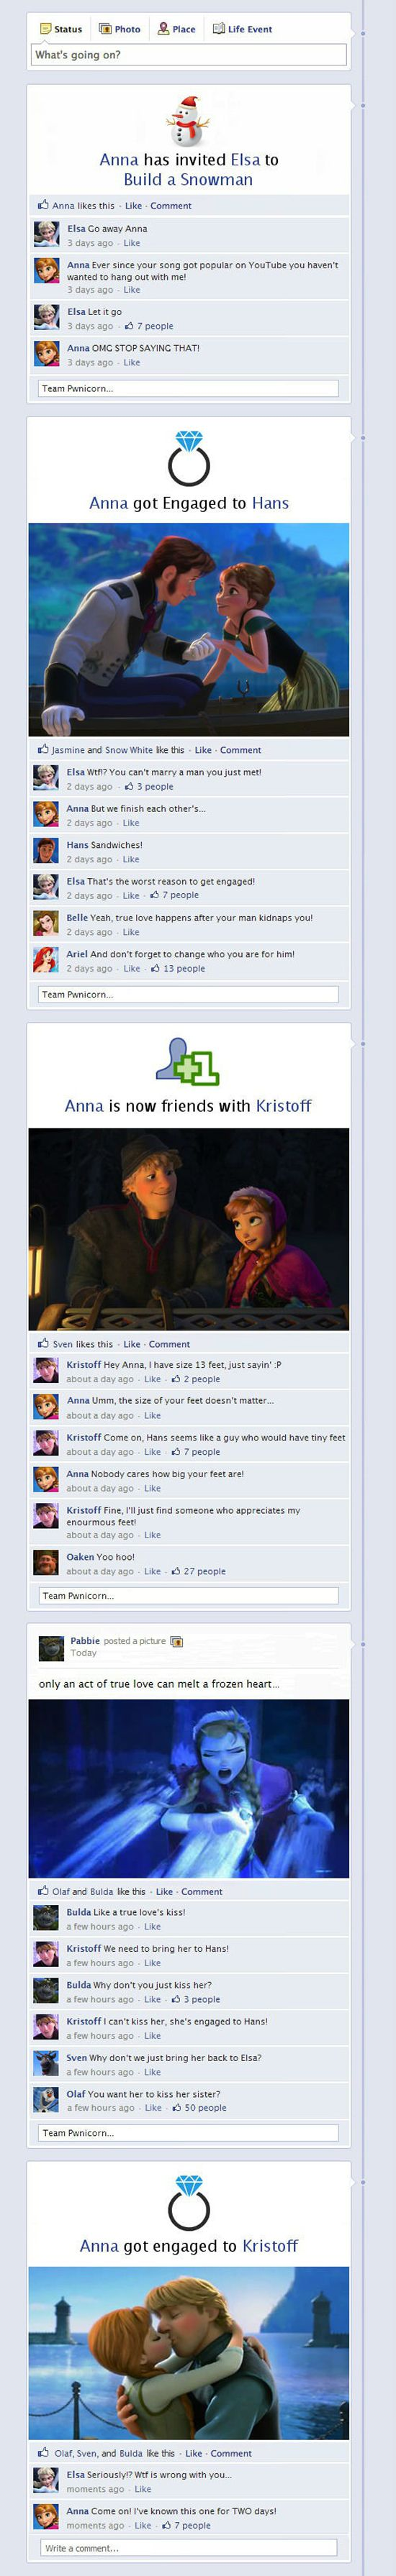 Frozen Characters On Facebook